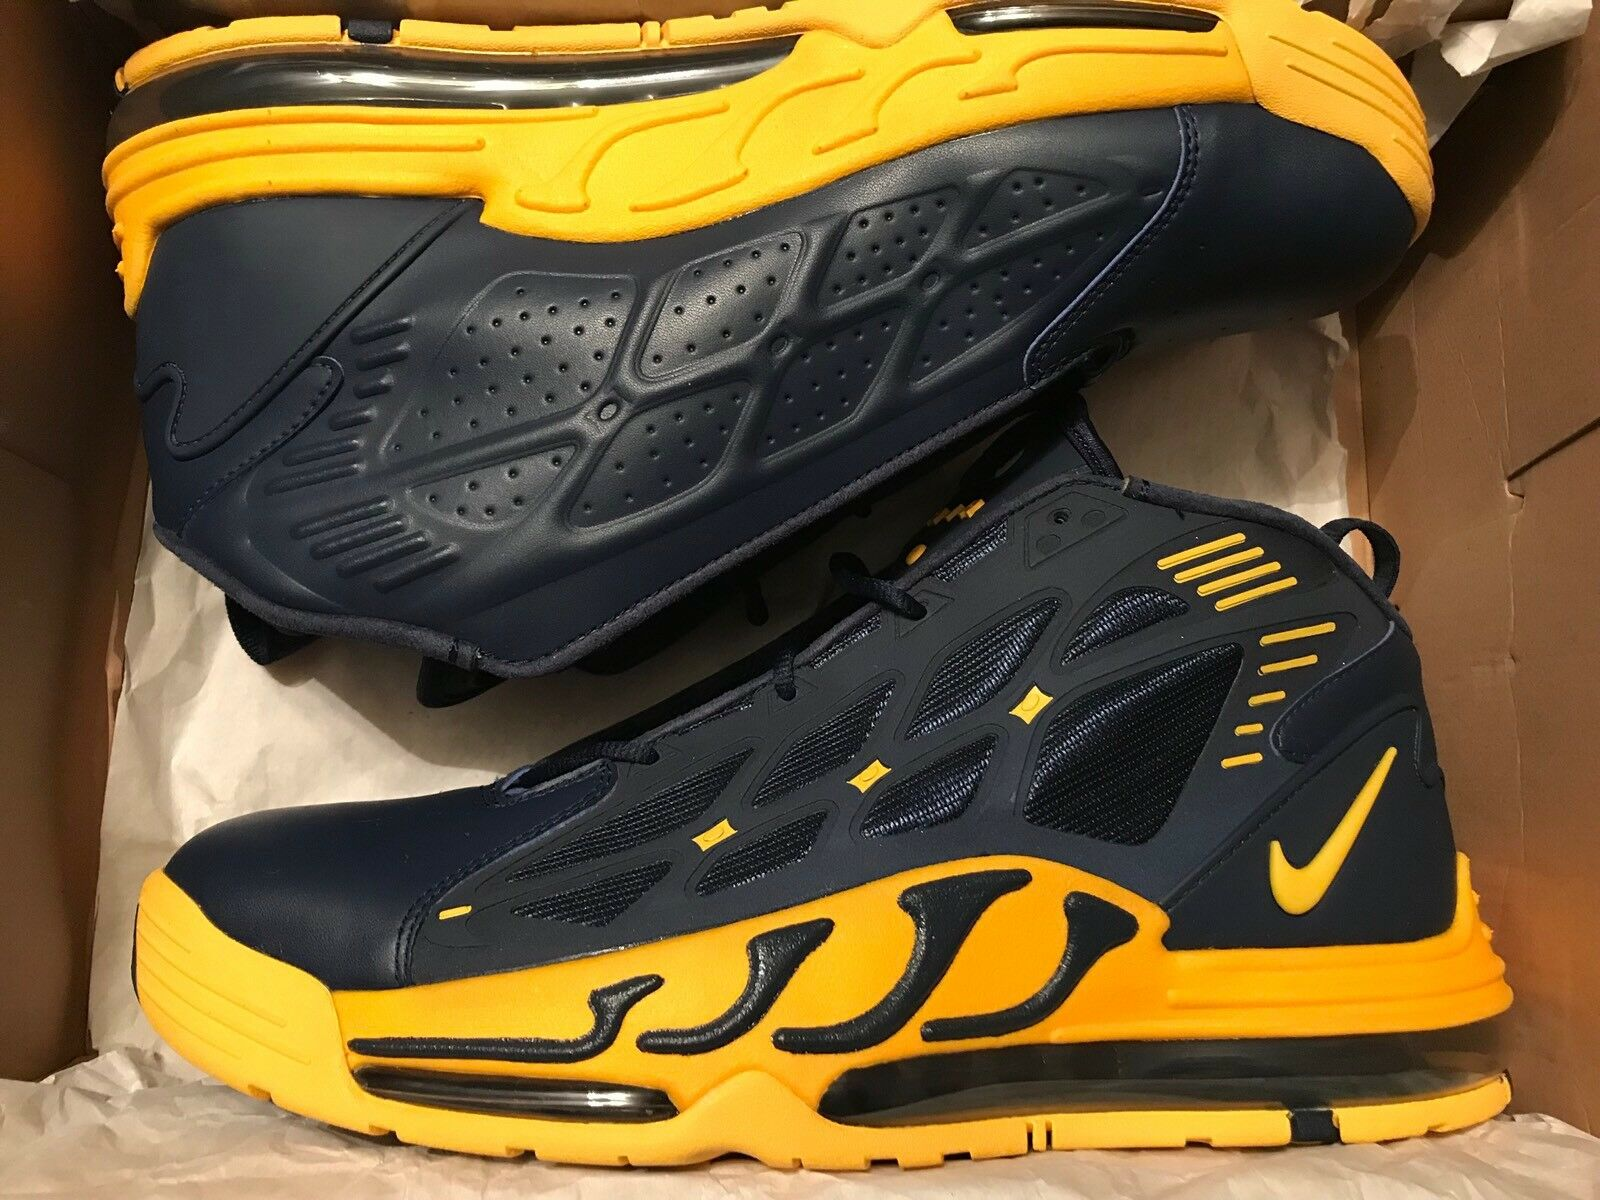 Nike Air Max Pillar Navy/Maize Retro Michigan Wolverine Size 13 New DS Rare